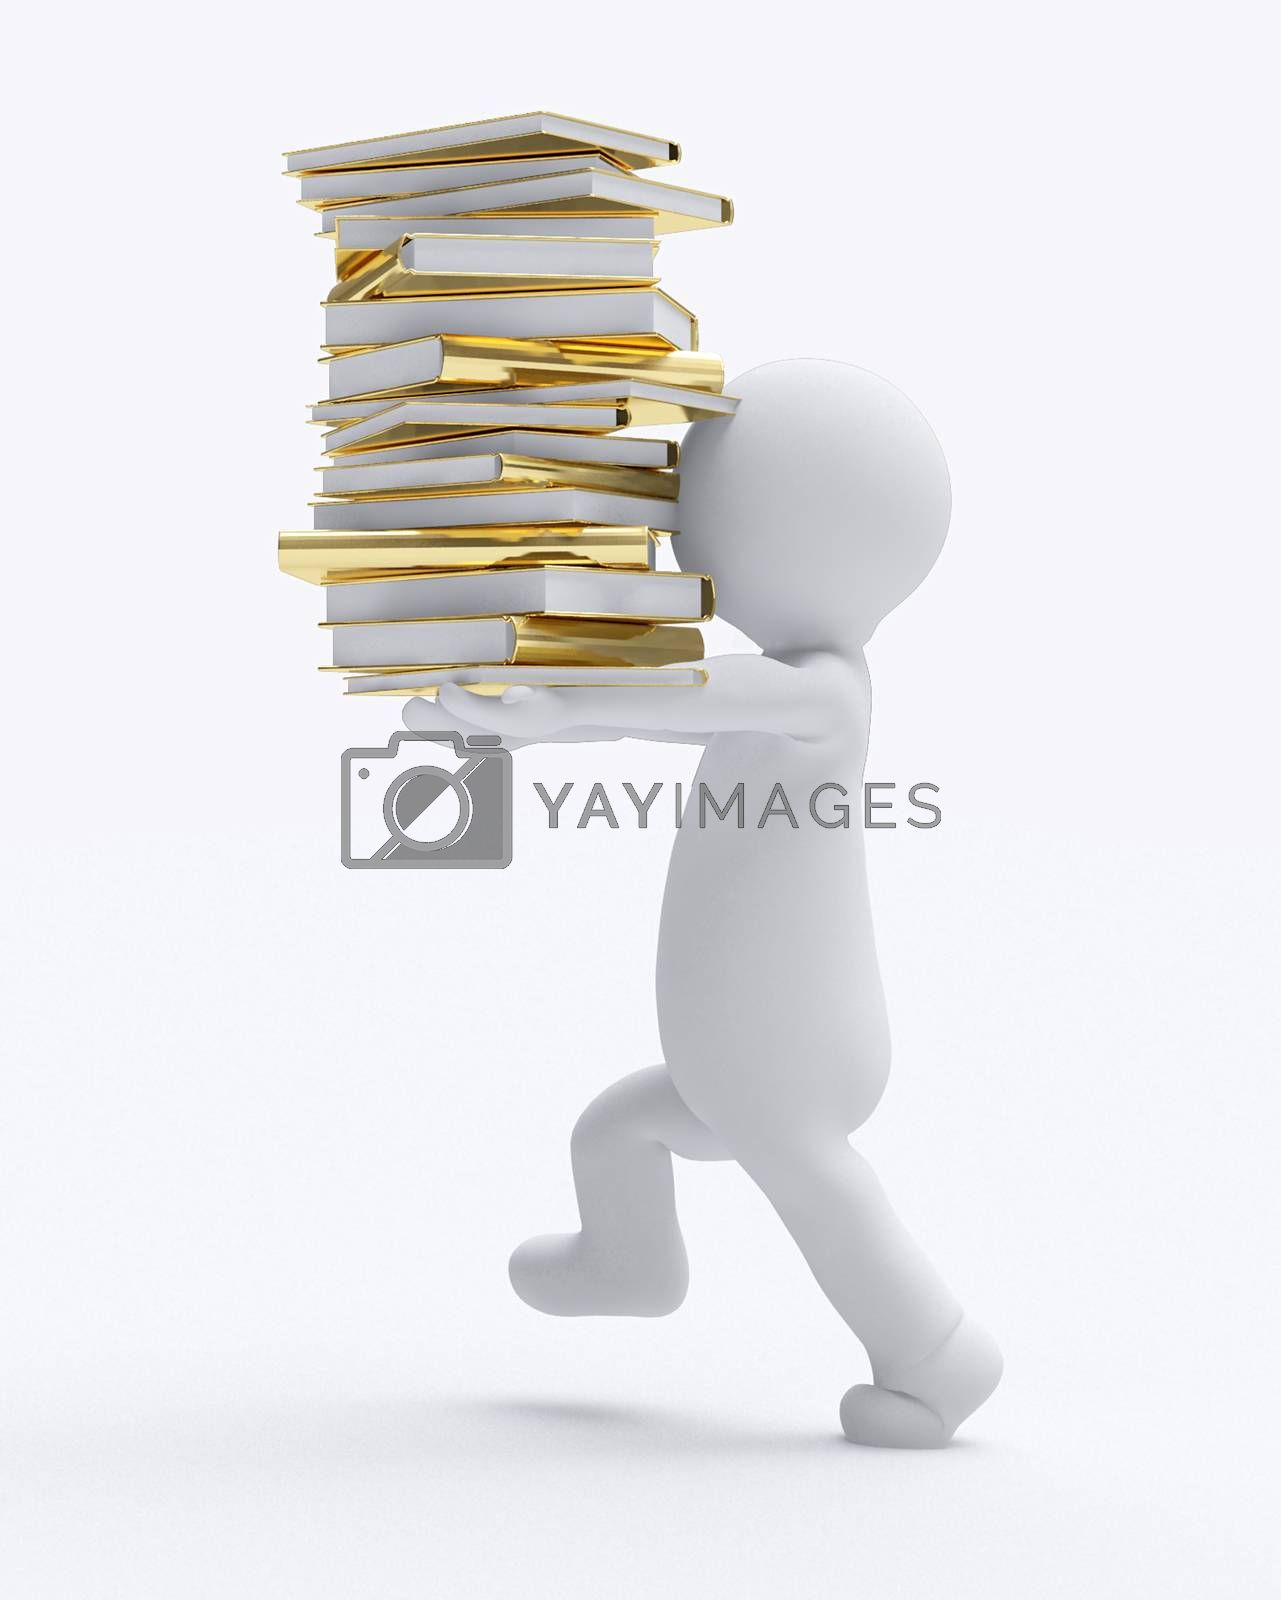 d small people carrying books d image isolated white background. 3D illustration.